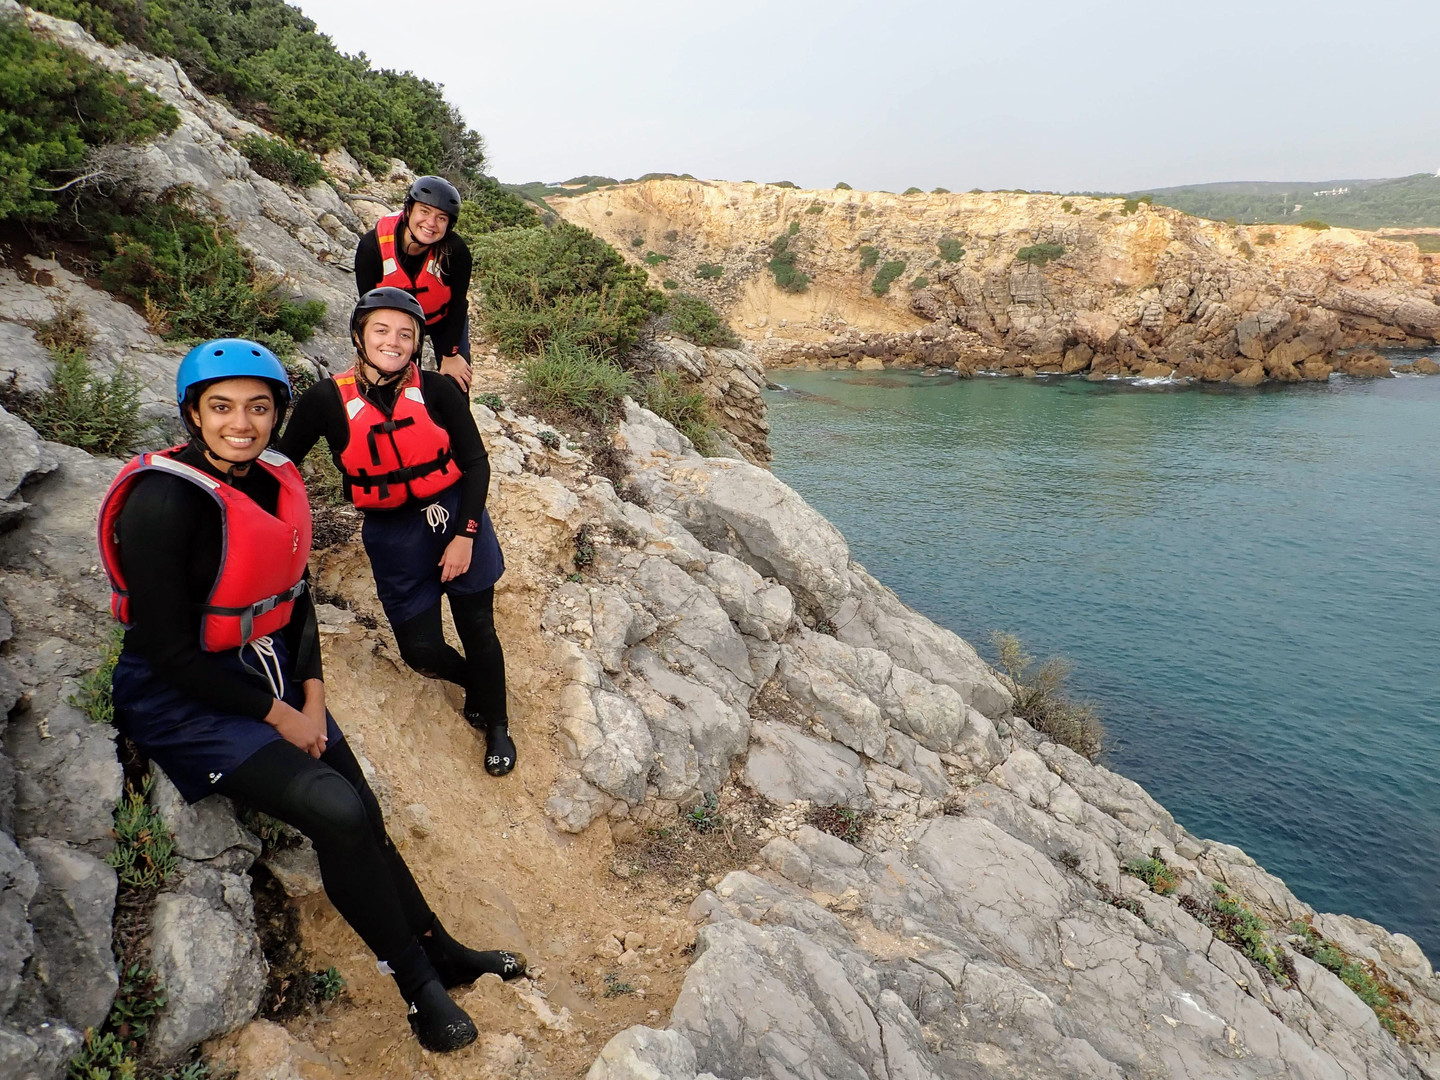 Coastline Algarve Coasteering adventure